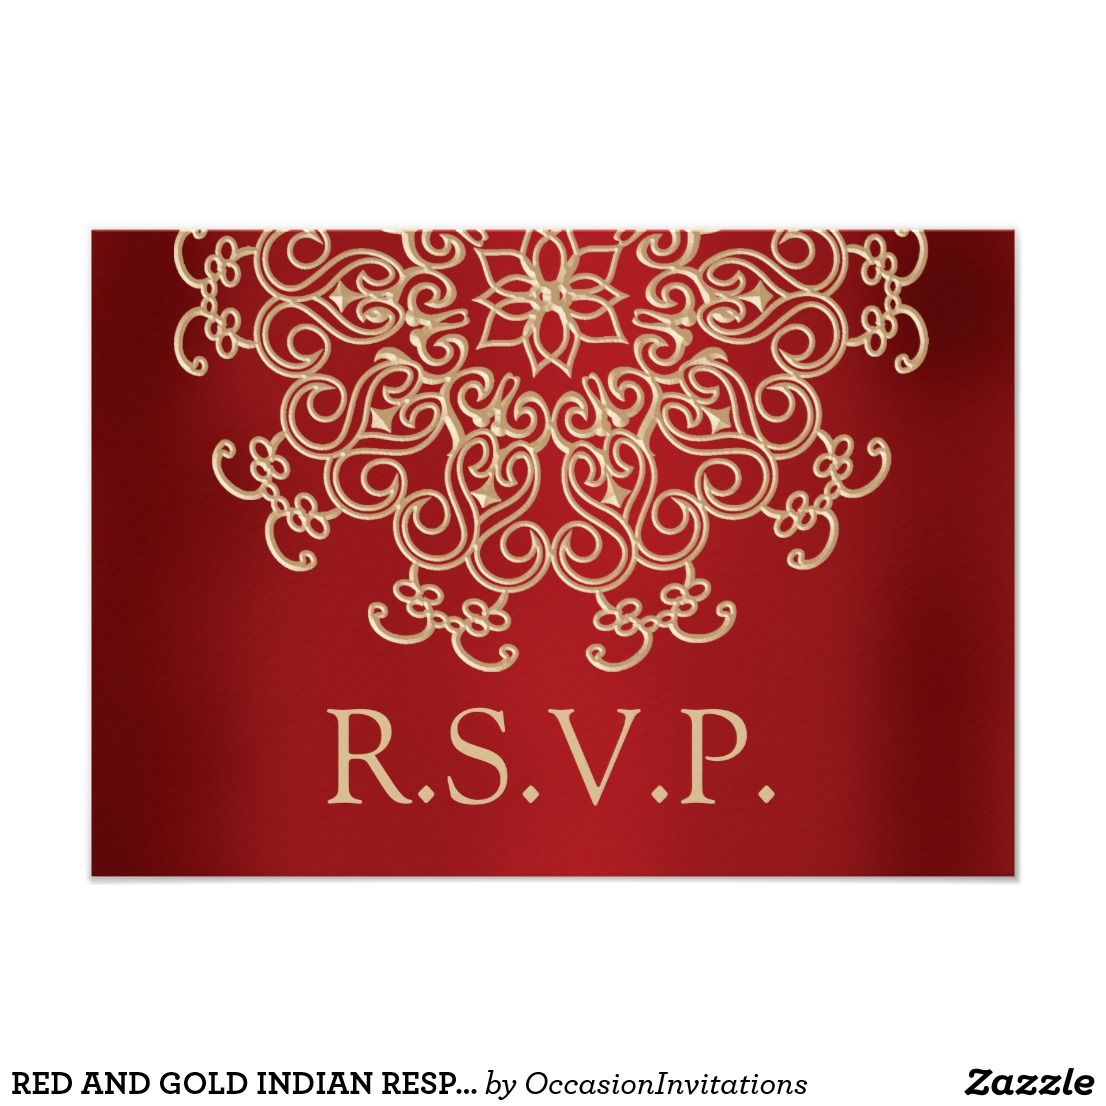 Red and gold indian response rsvp card | Lotus design, Response ...